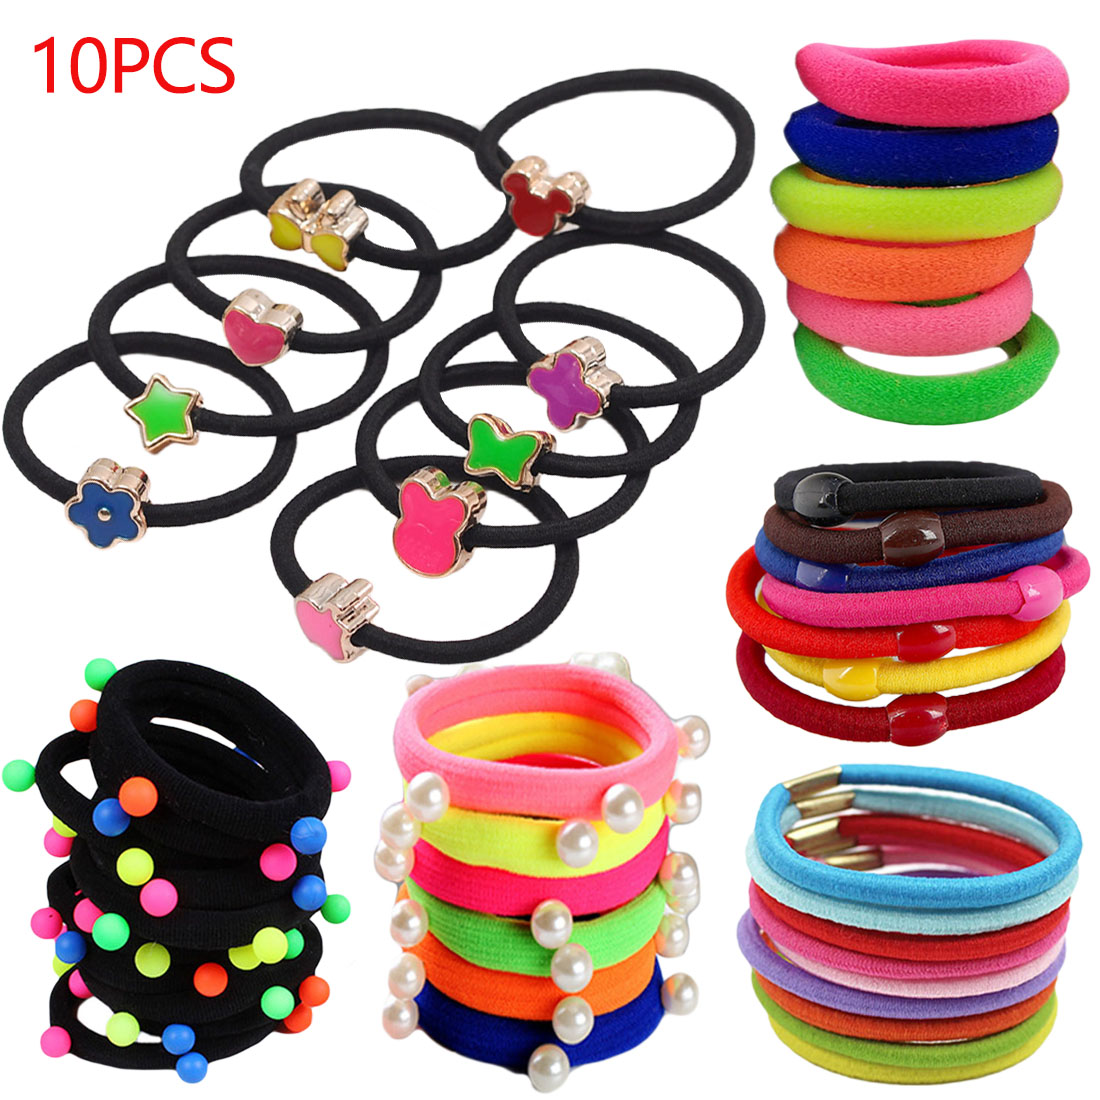 Colorful 10pcs/lot Headbands Elastic Seamless Scrunchie Gum Headwear Ponytail Holder Ropes Hair Accessories Women Hair Ornaments mism girl french hair bun maker multifunctional hair accessories for women fine roller curls styling holder curlers headbands